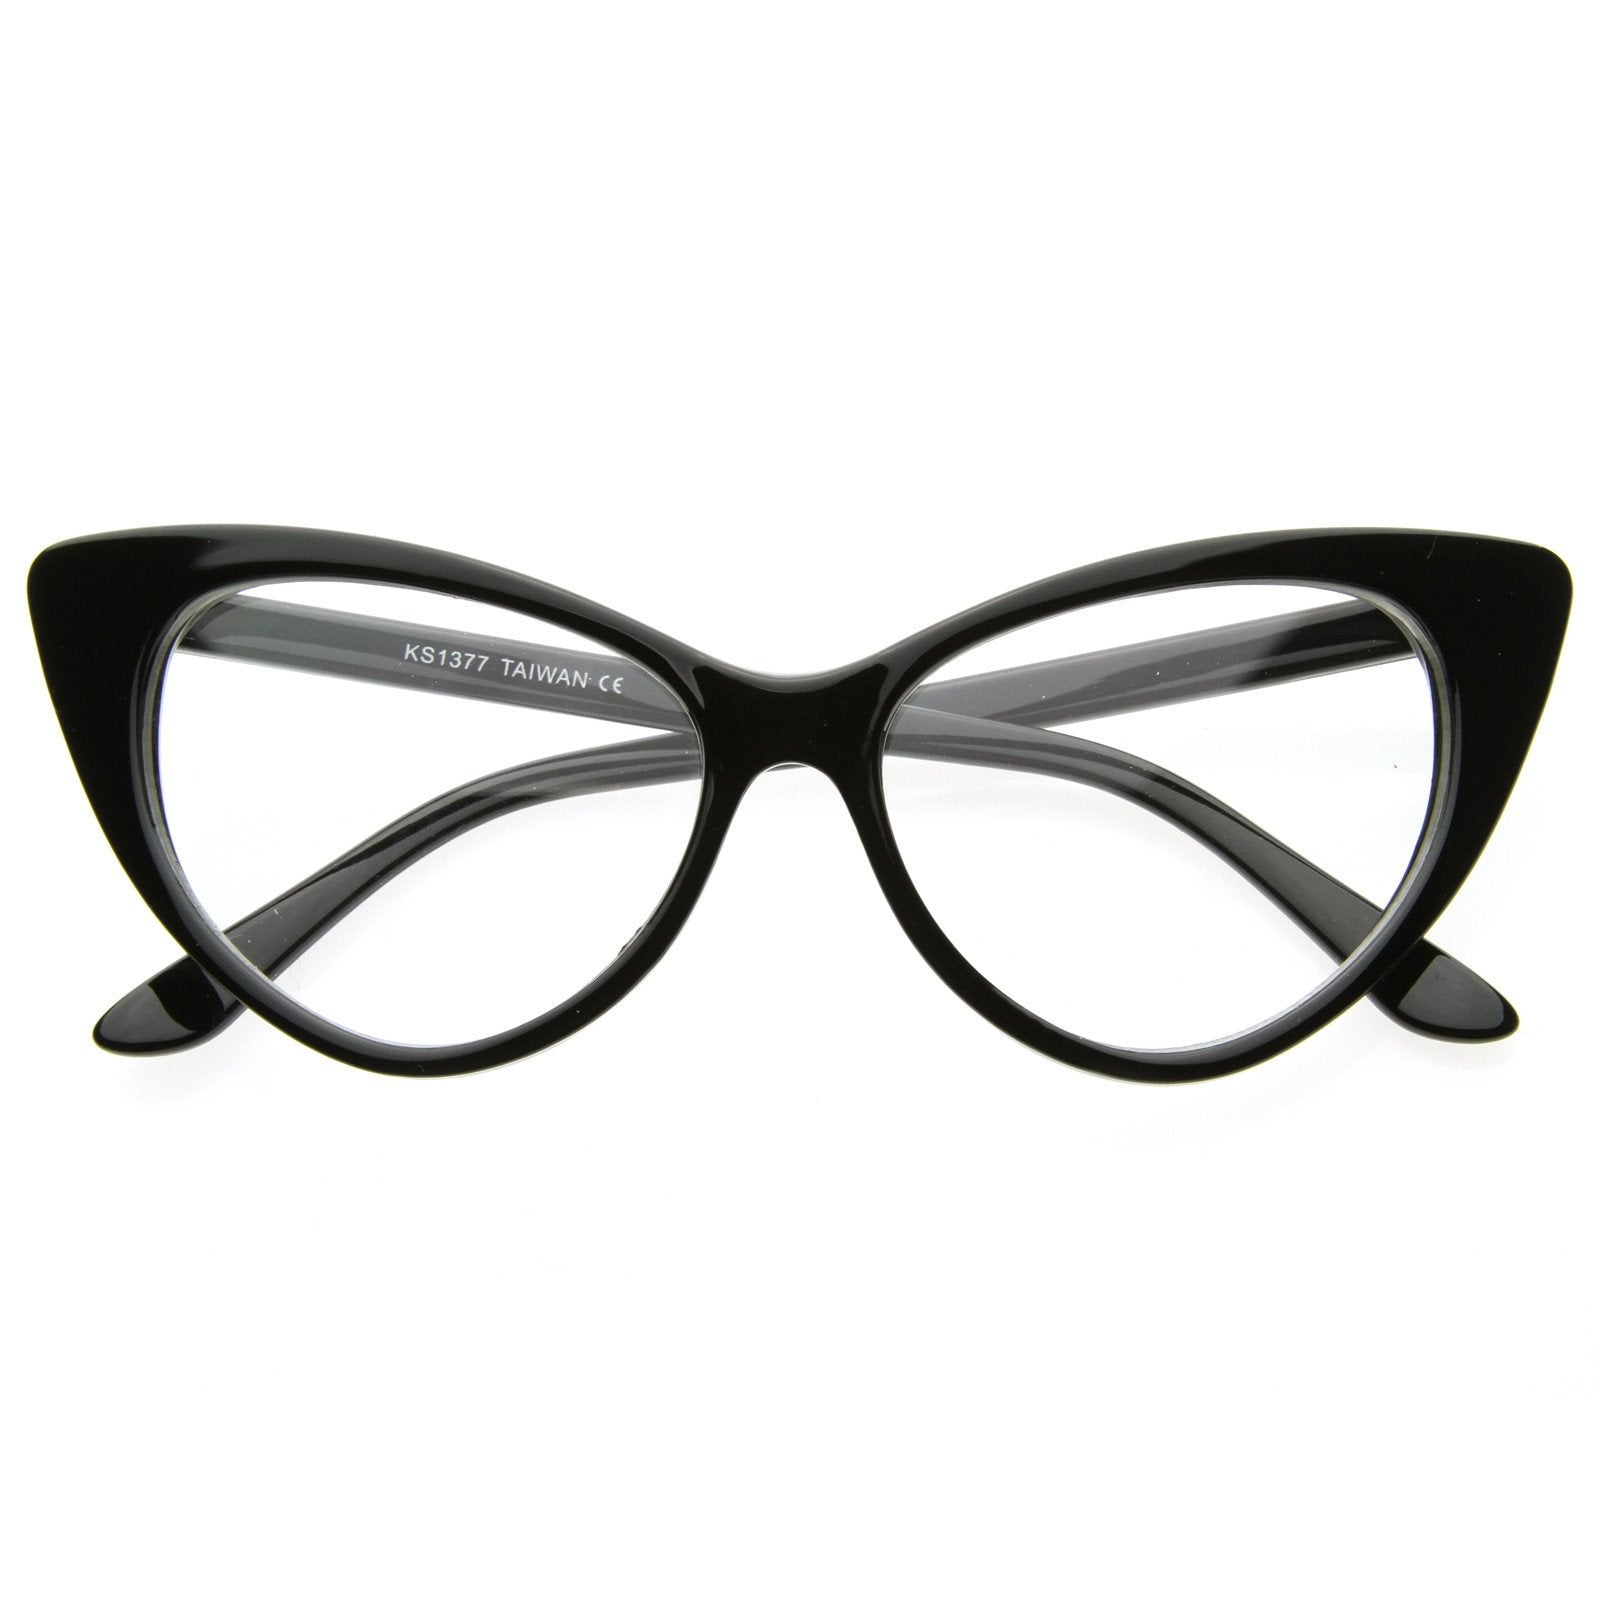 180b5e11c12c ... Vintage Mod Fashion Cat Eye Clear Lens Glasses 8435 · Black